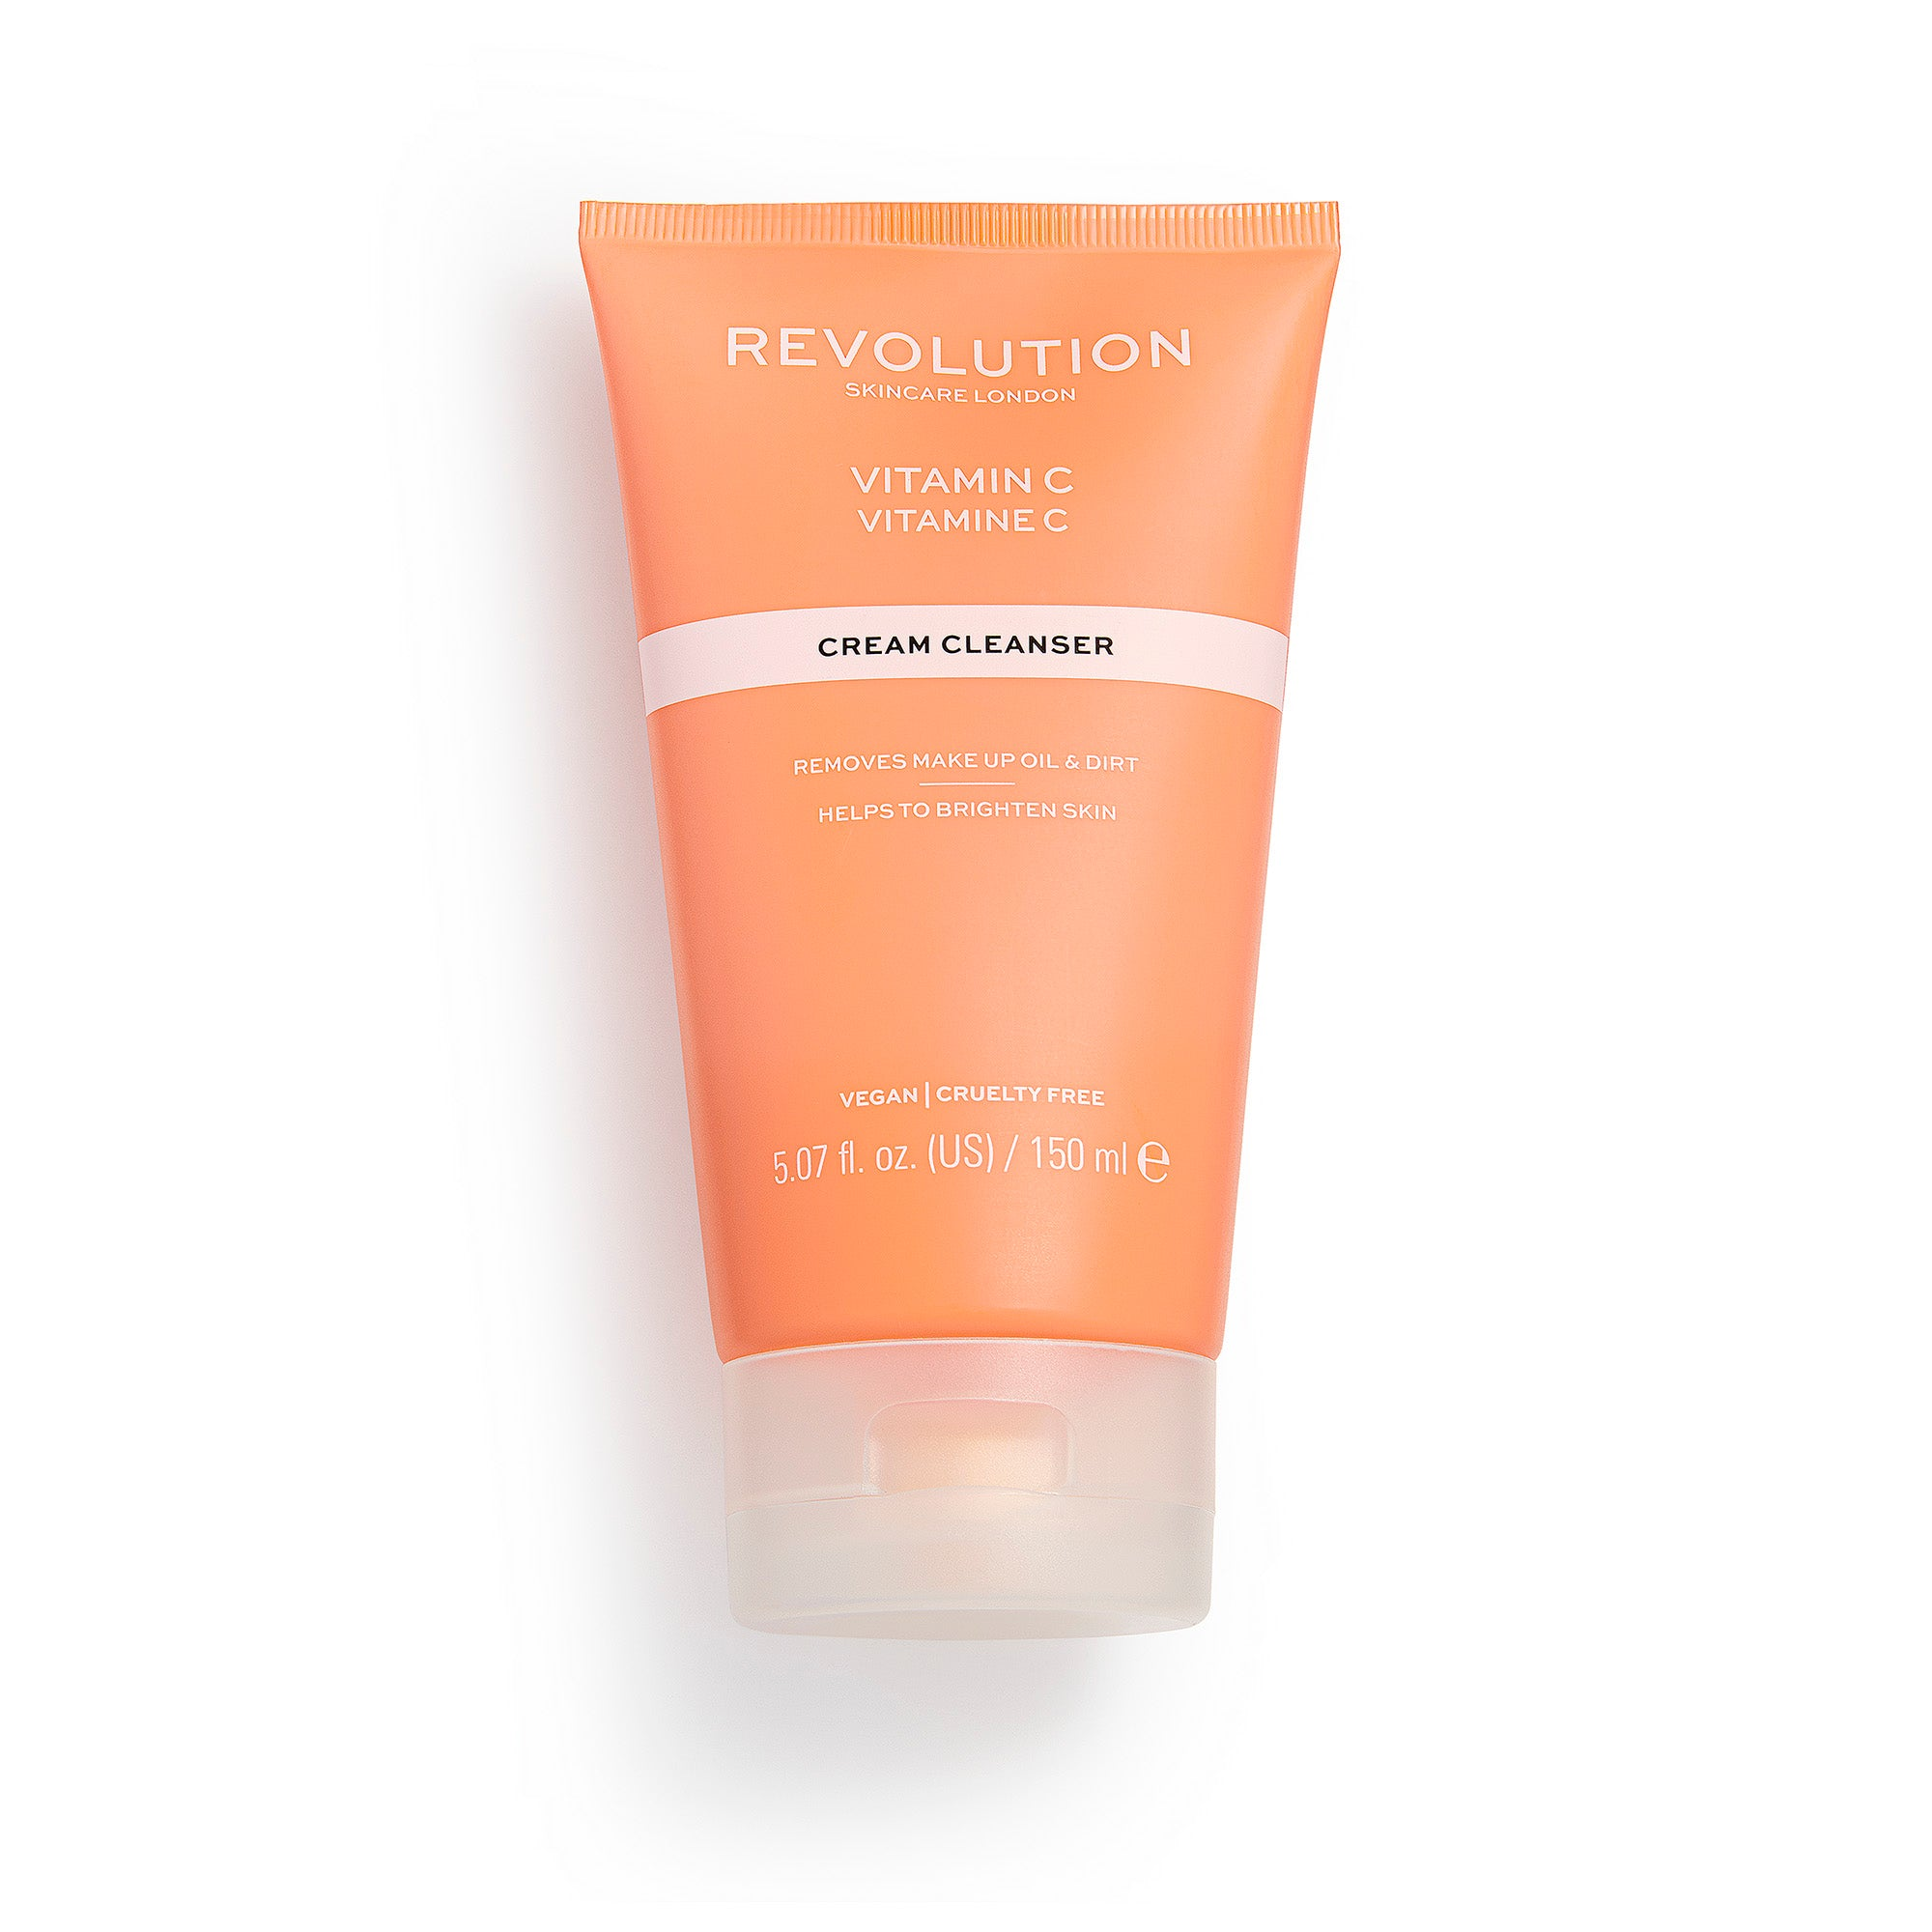 Revolution Vitamin C Brightening Cream Cleanser